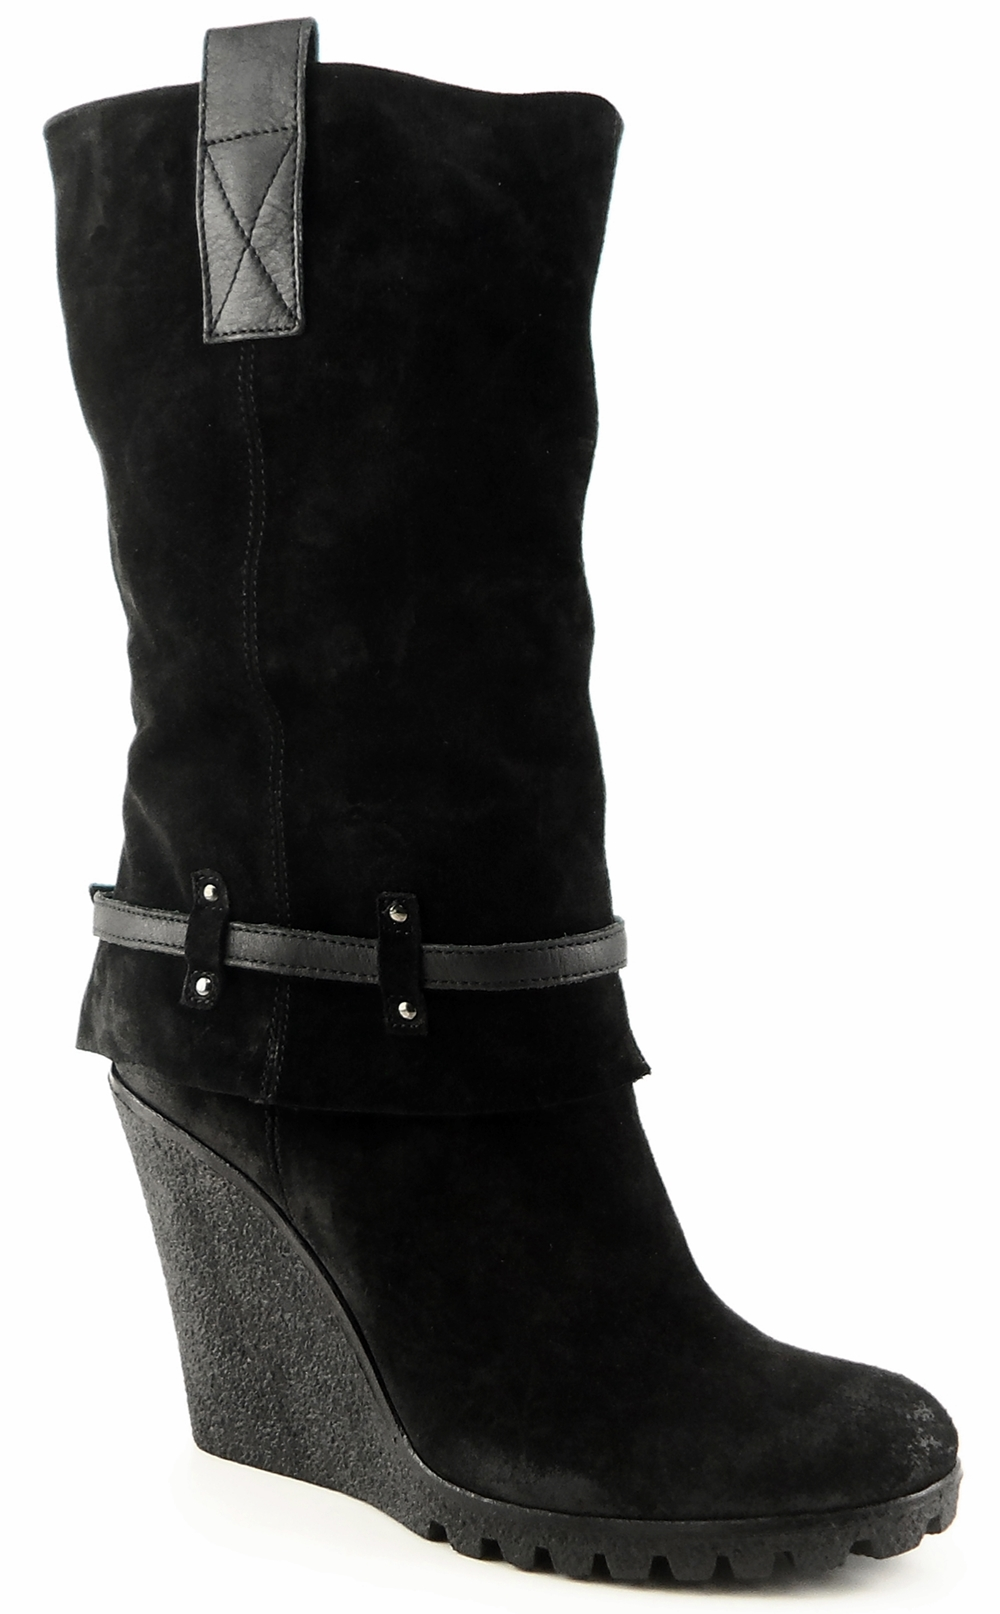 NOW: Black Suede '9065' Boots